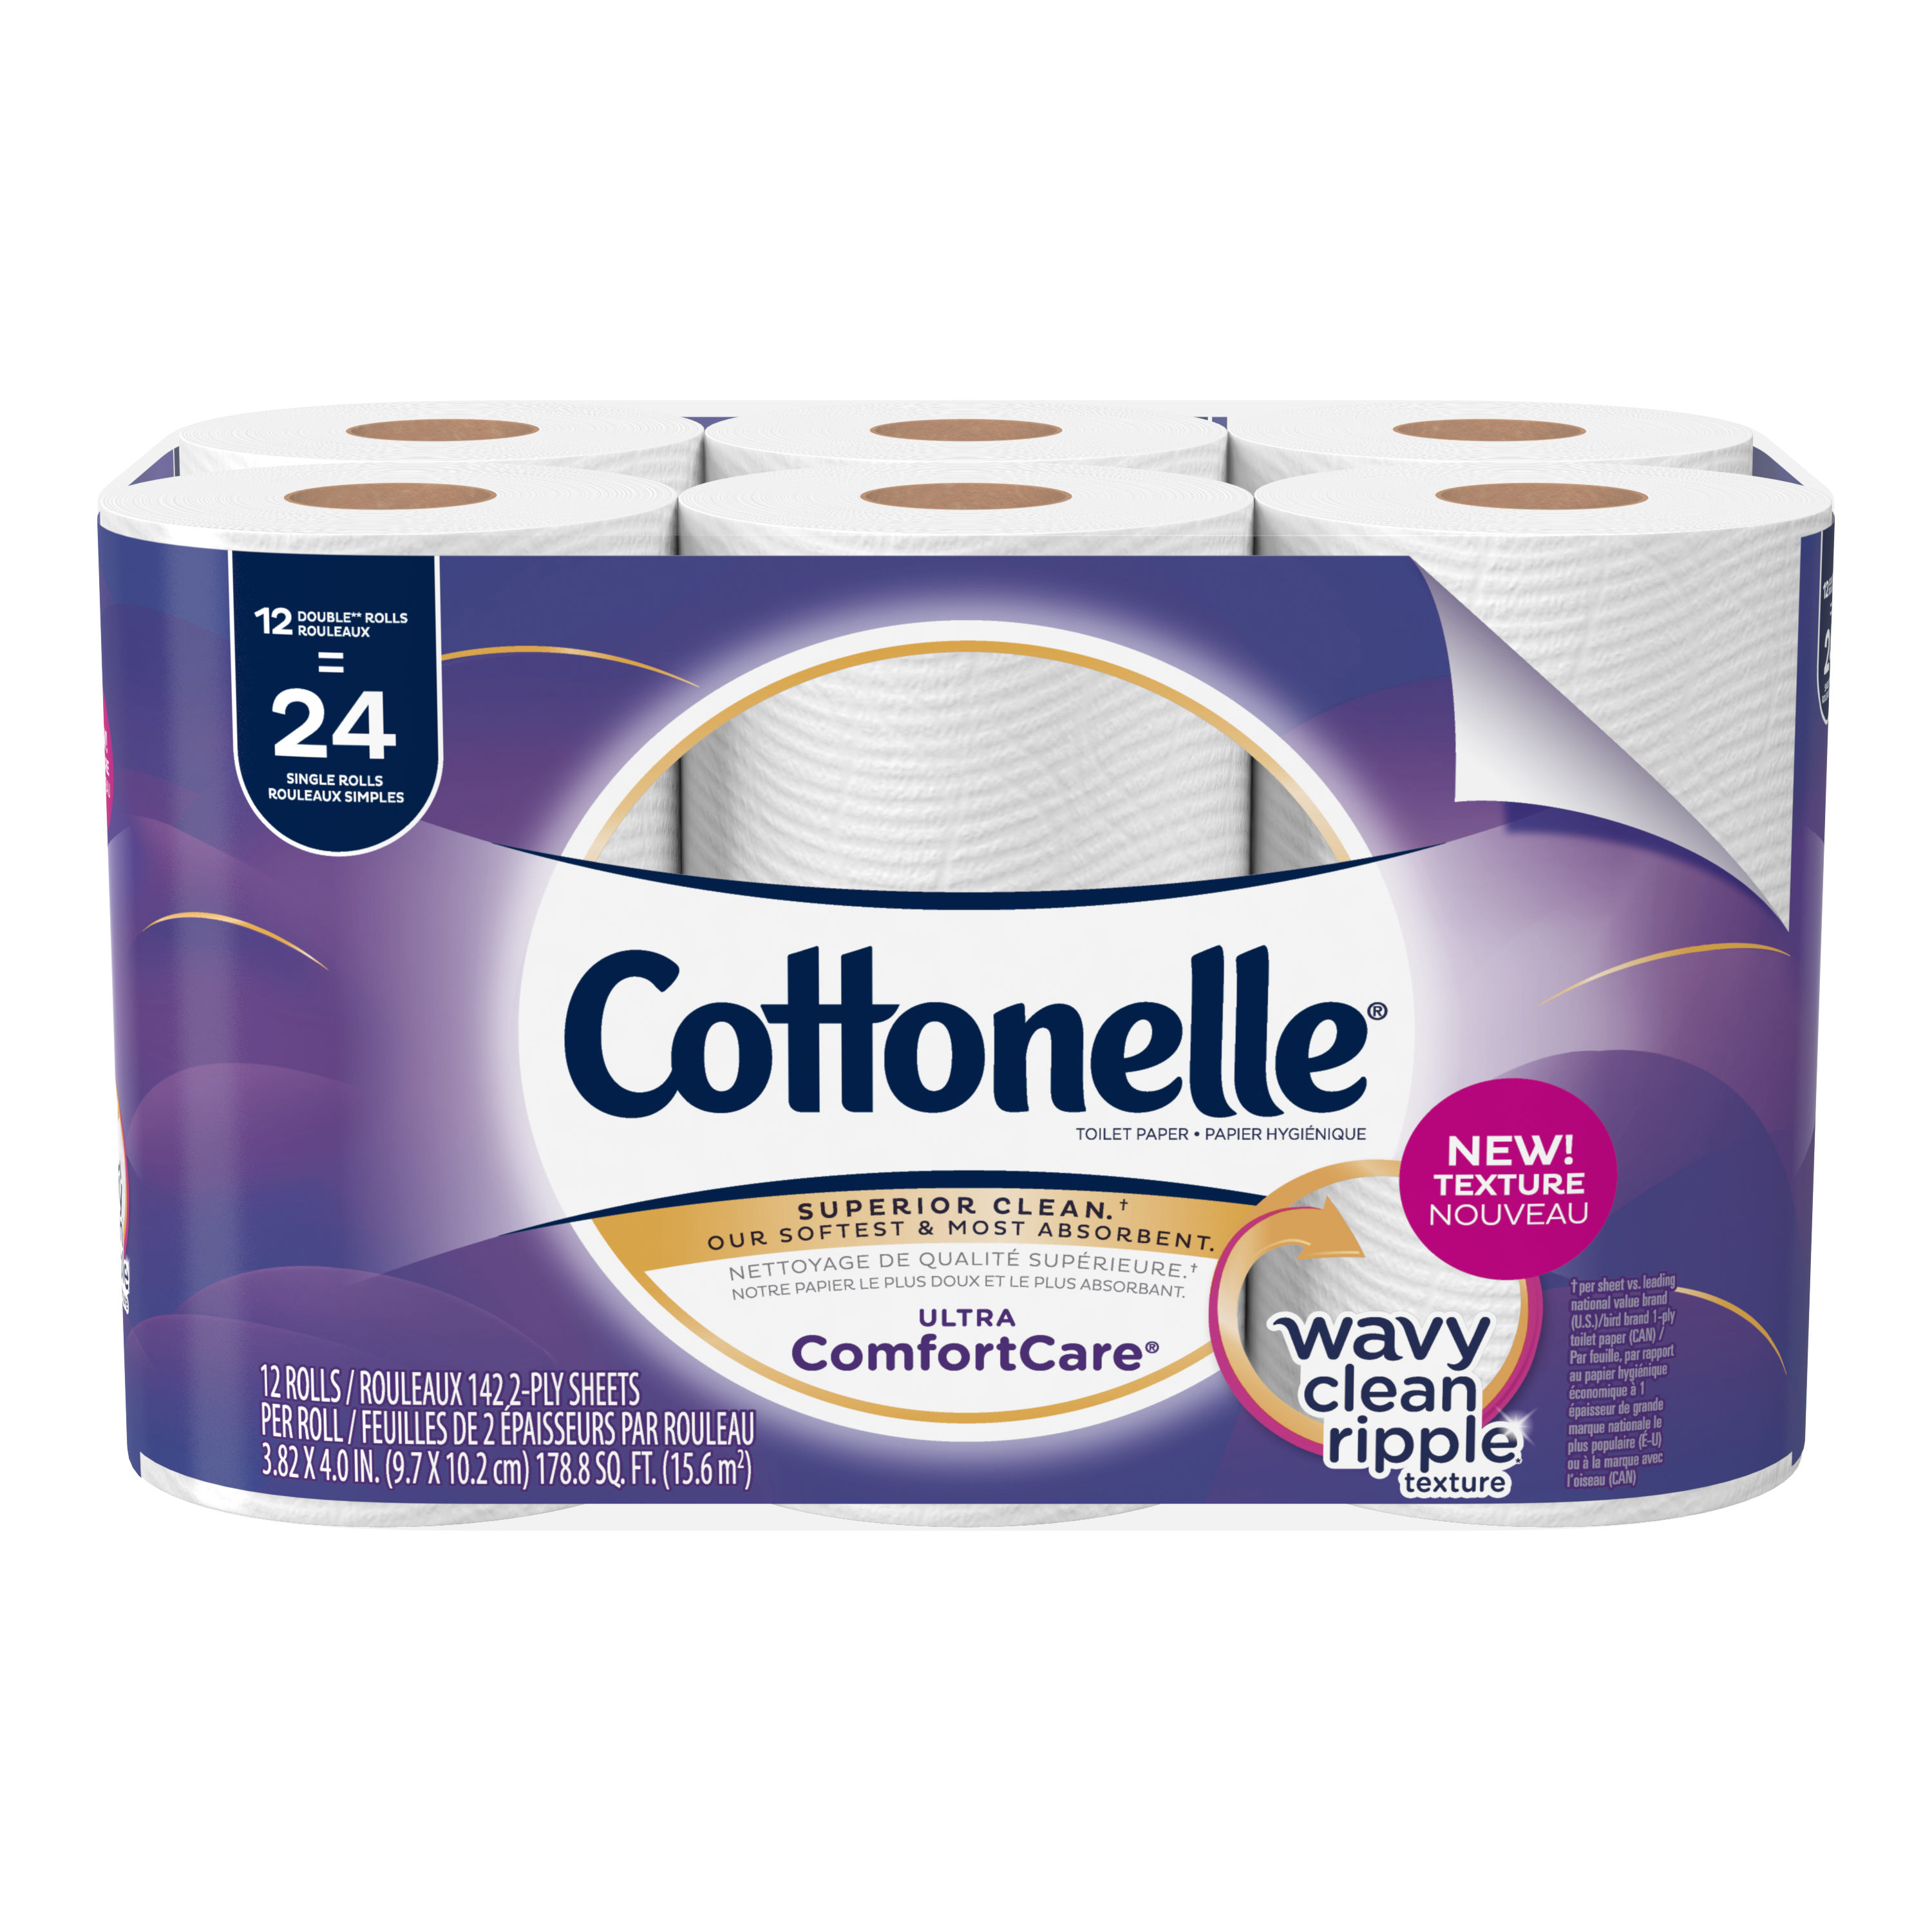 Cottonelle Ultra Comfort Care, 12 Double Rolls, Toilet Paper by Kimberly-Clark Corporation